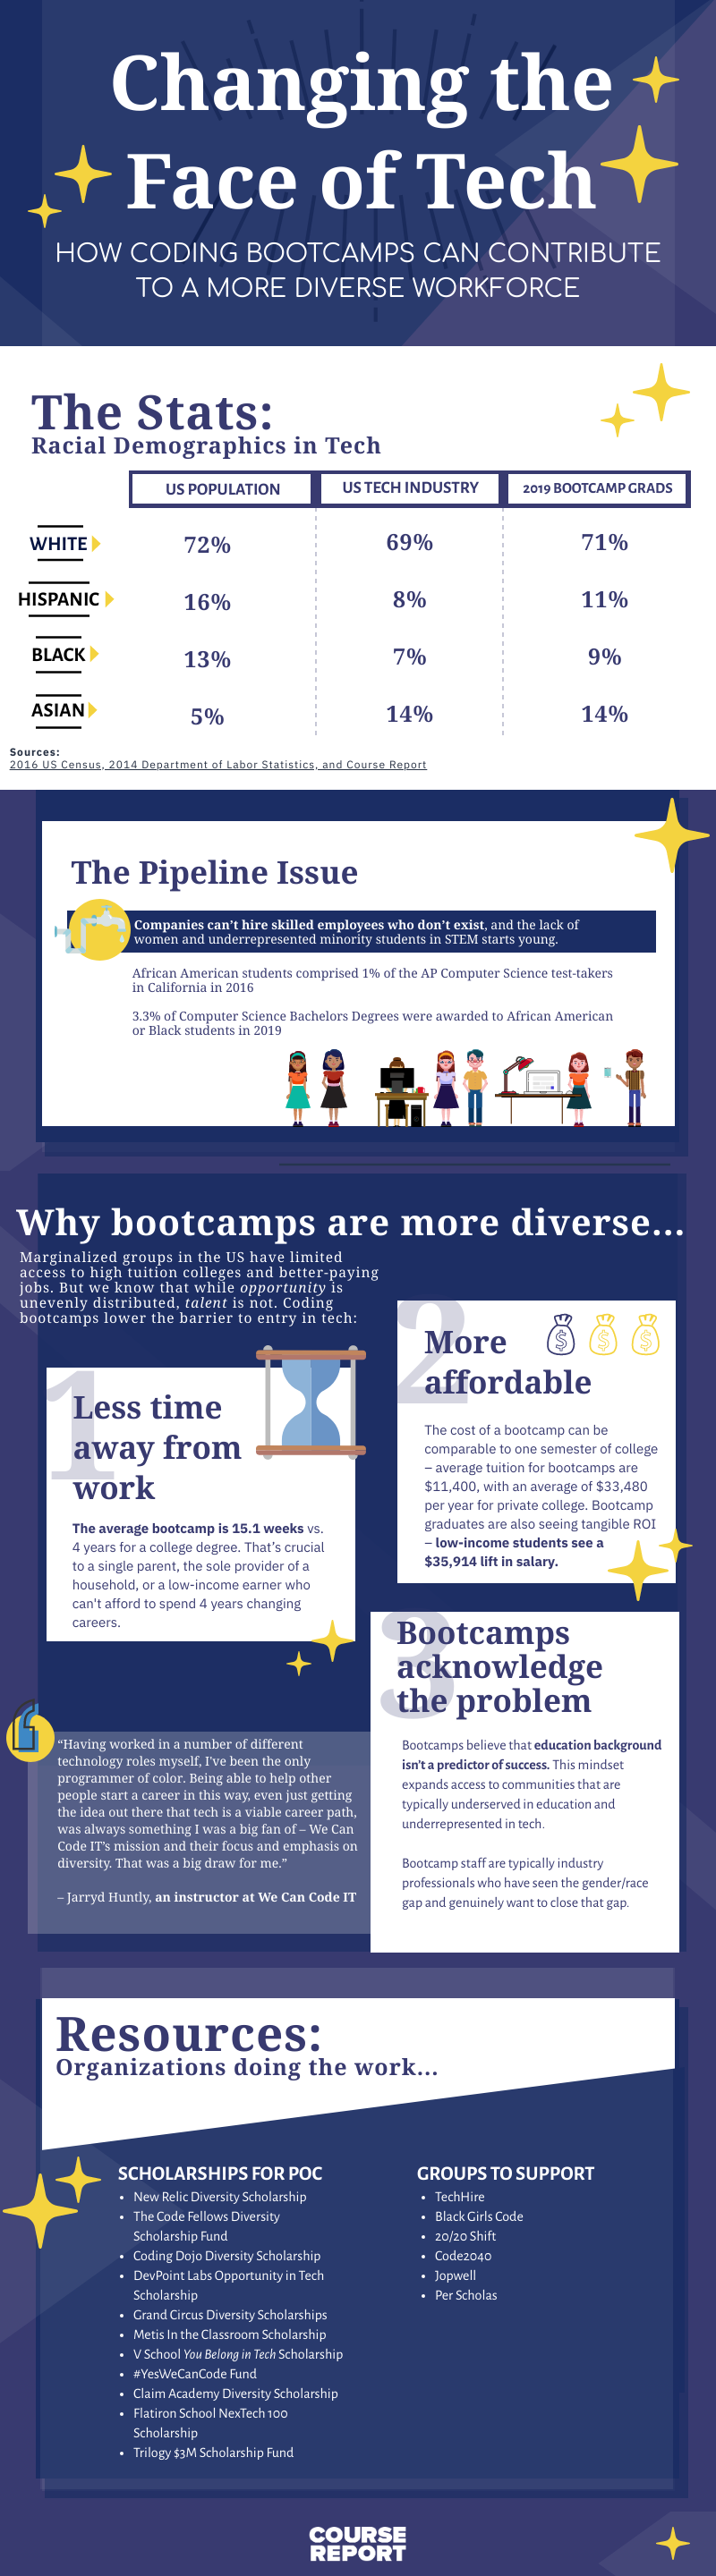 diversity-tech-bootcamps